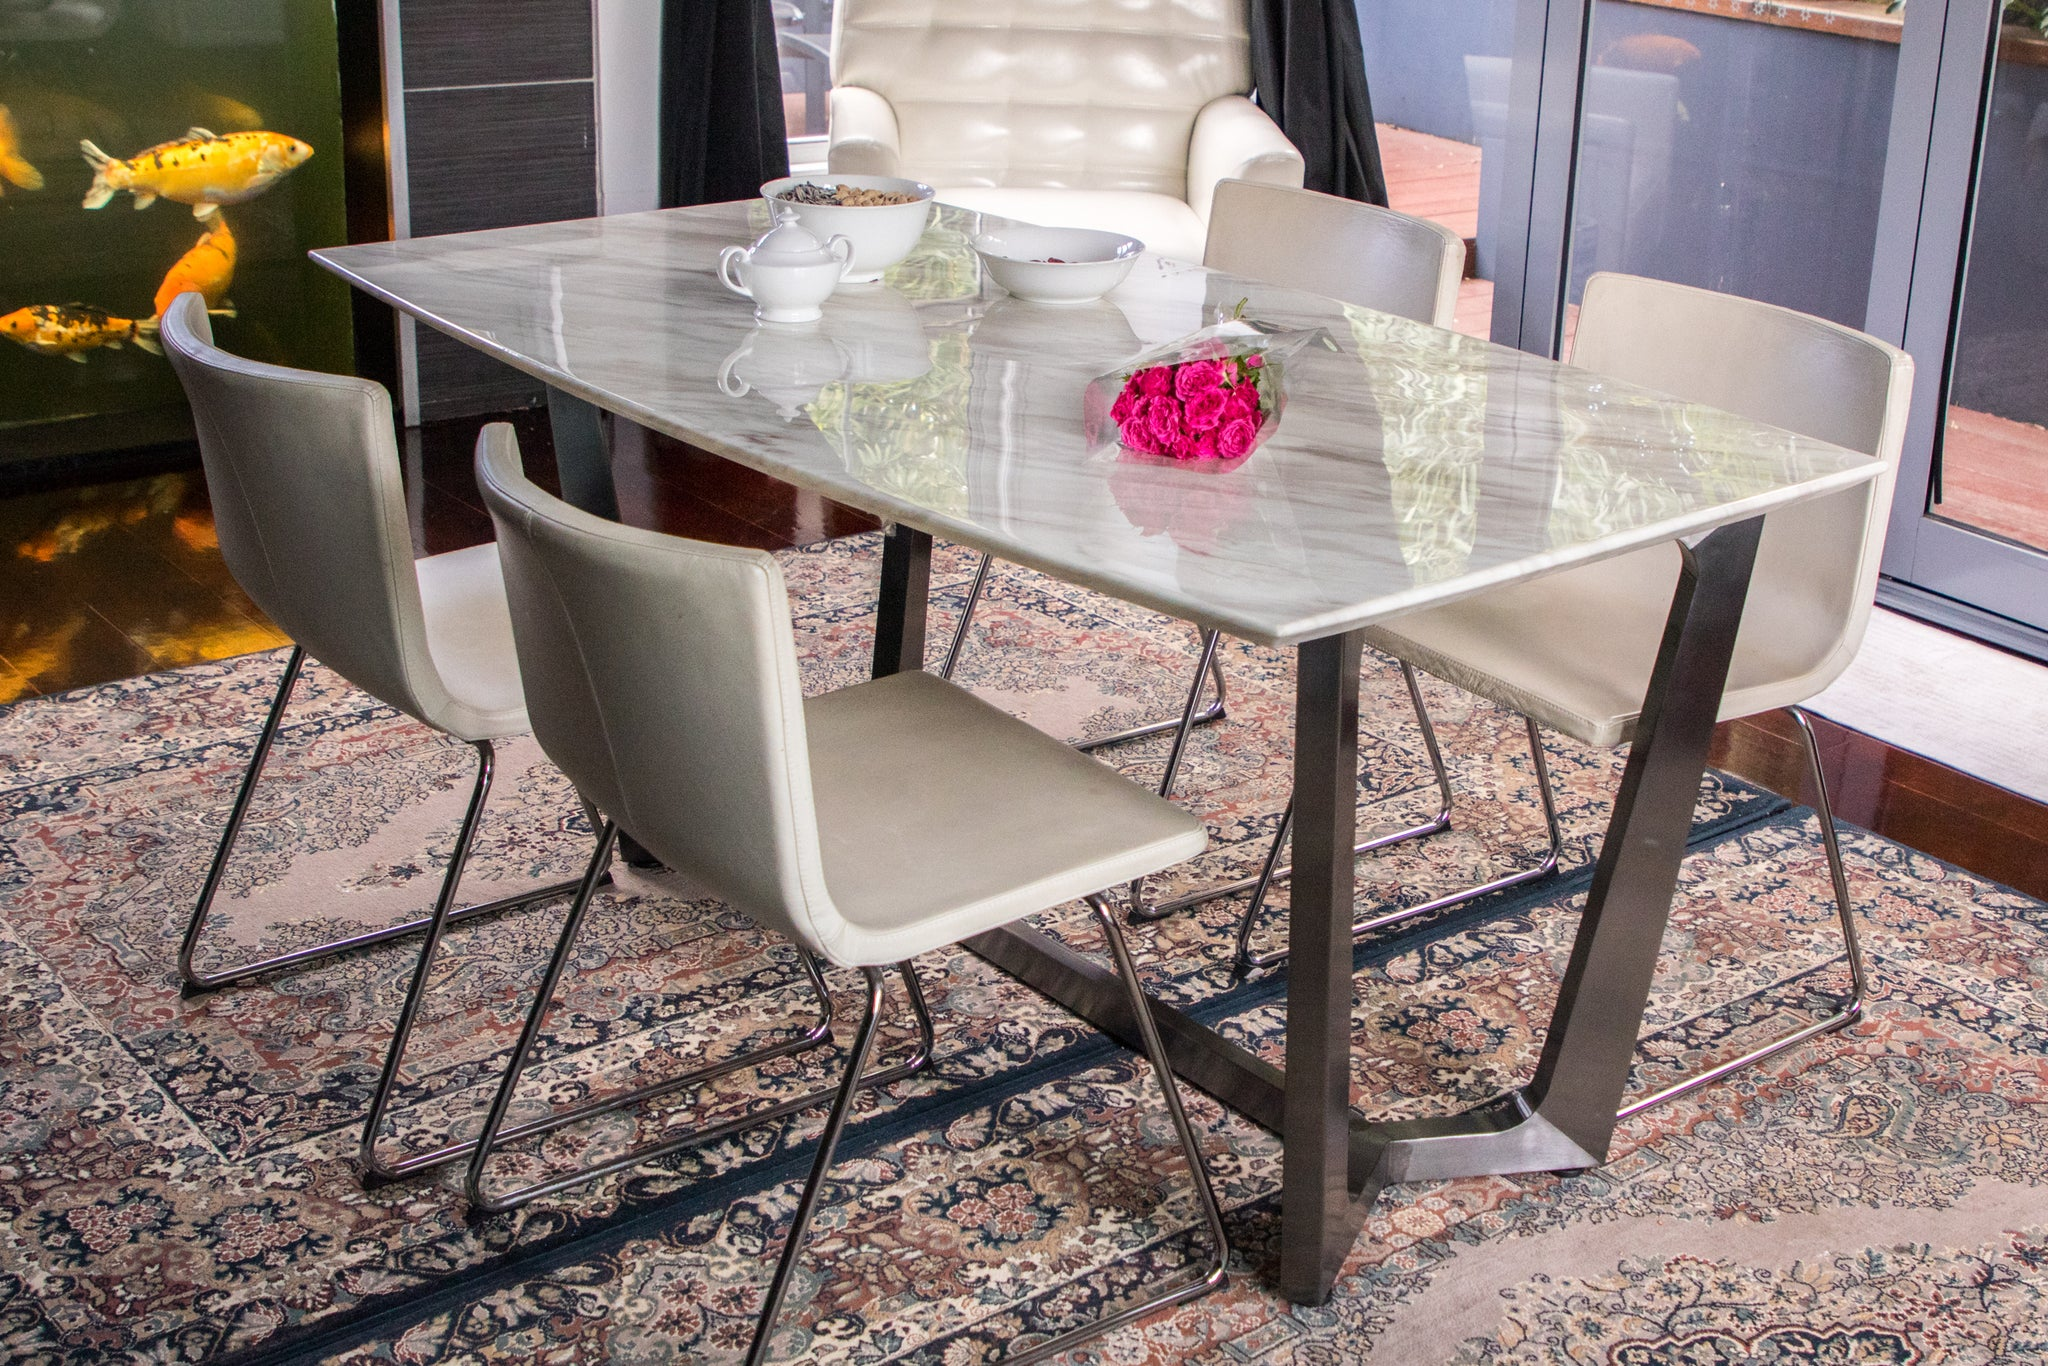 Zilan Pollished Dinning Table With White Marble Top Last One Pick U Trojan Homeware